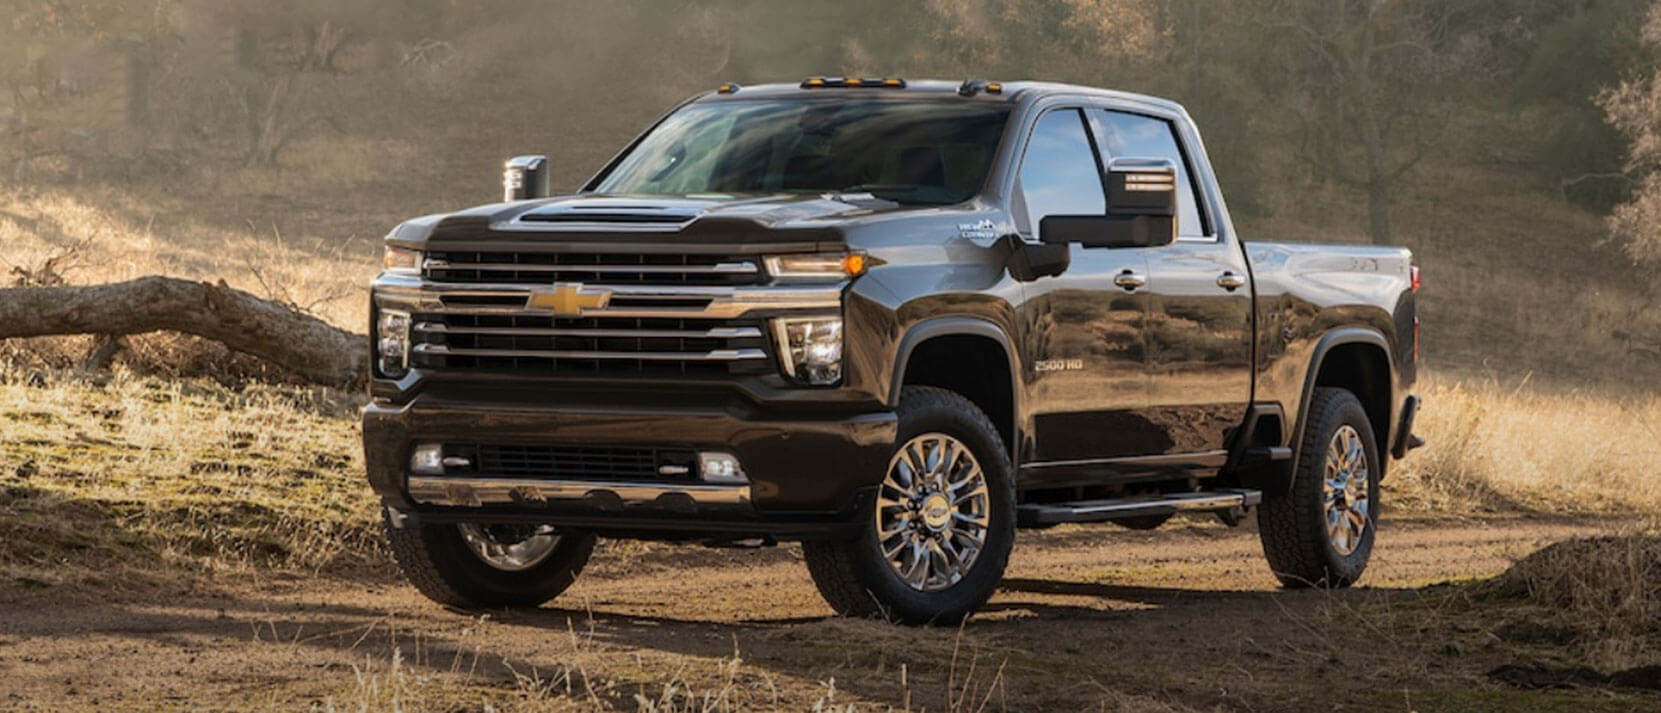 2020 Chevrolet Silverado 2500 HD at Star Automall in Greensburg, PA